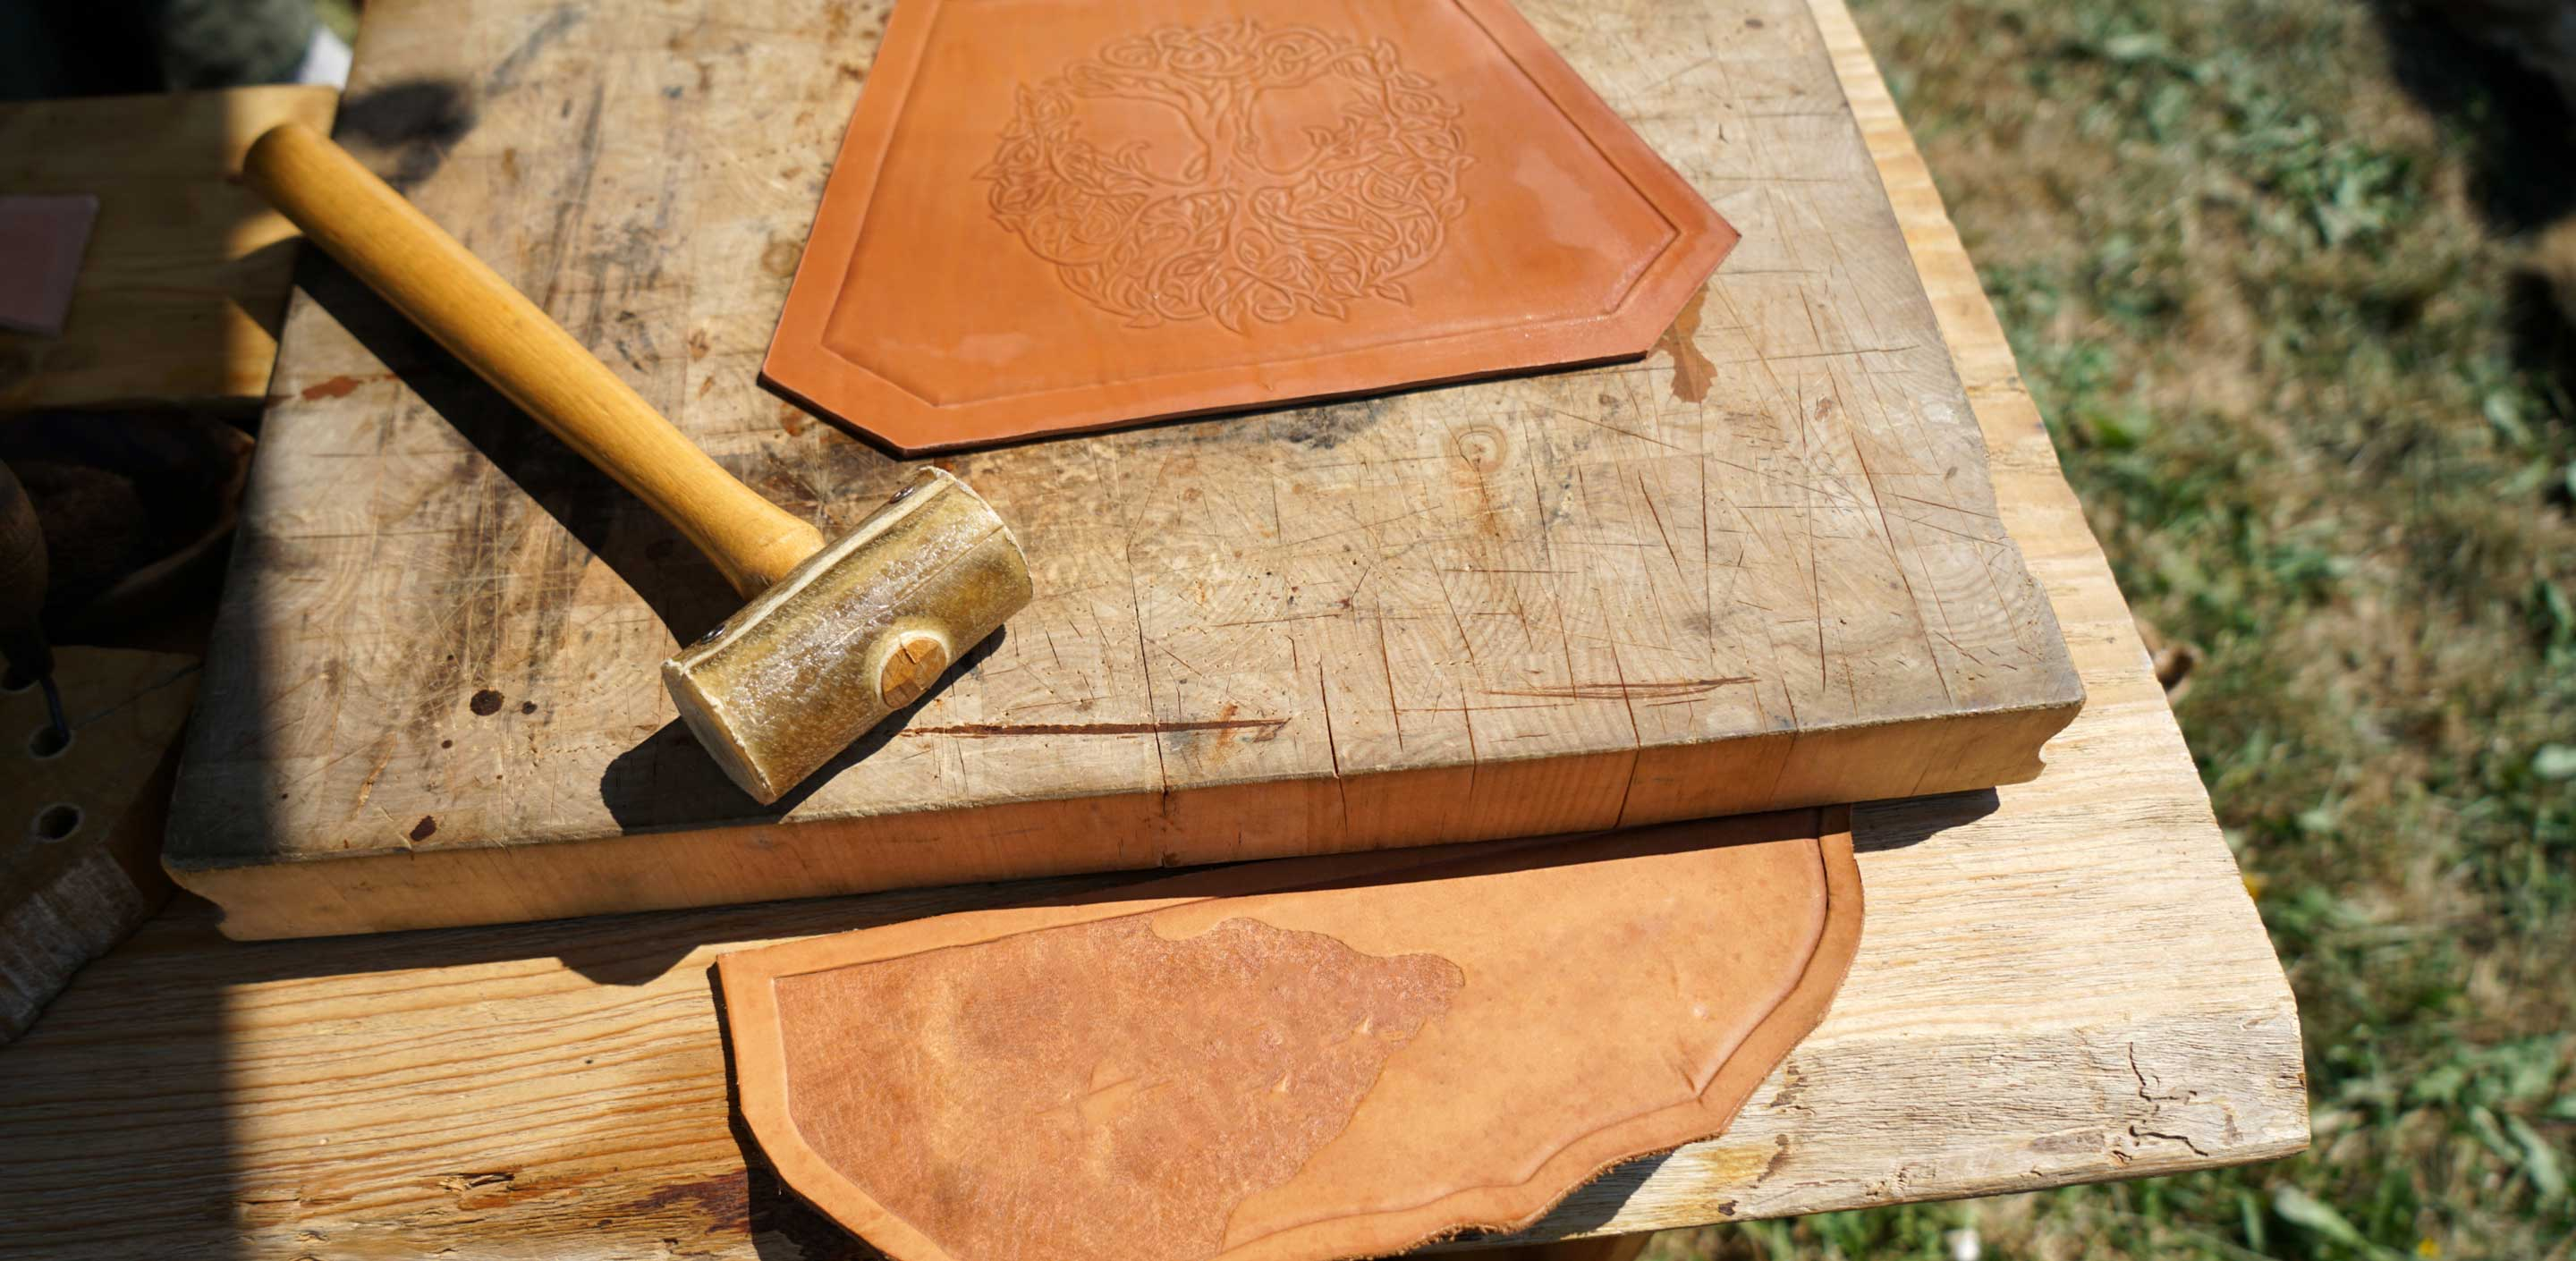 How to Engrave and Emboss Leather?